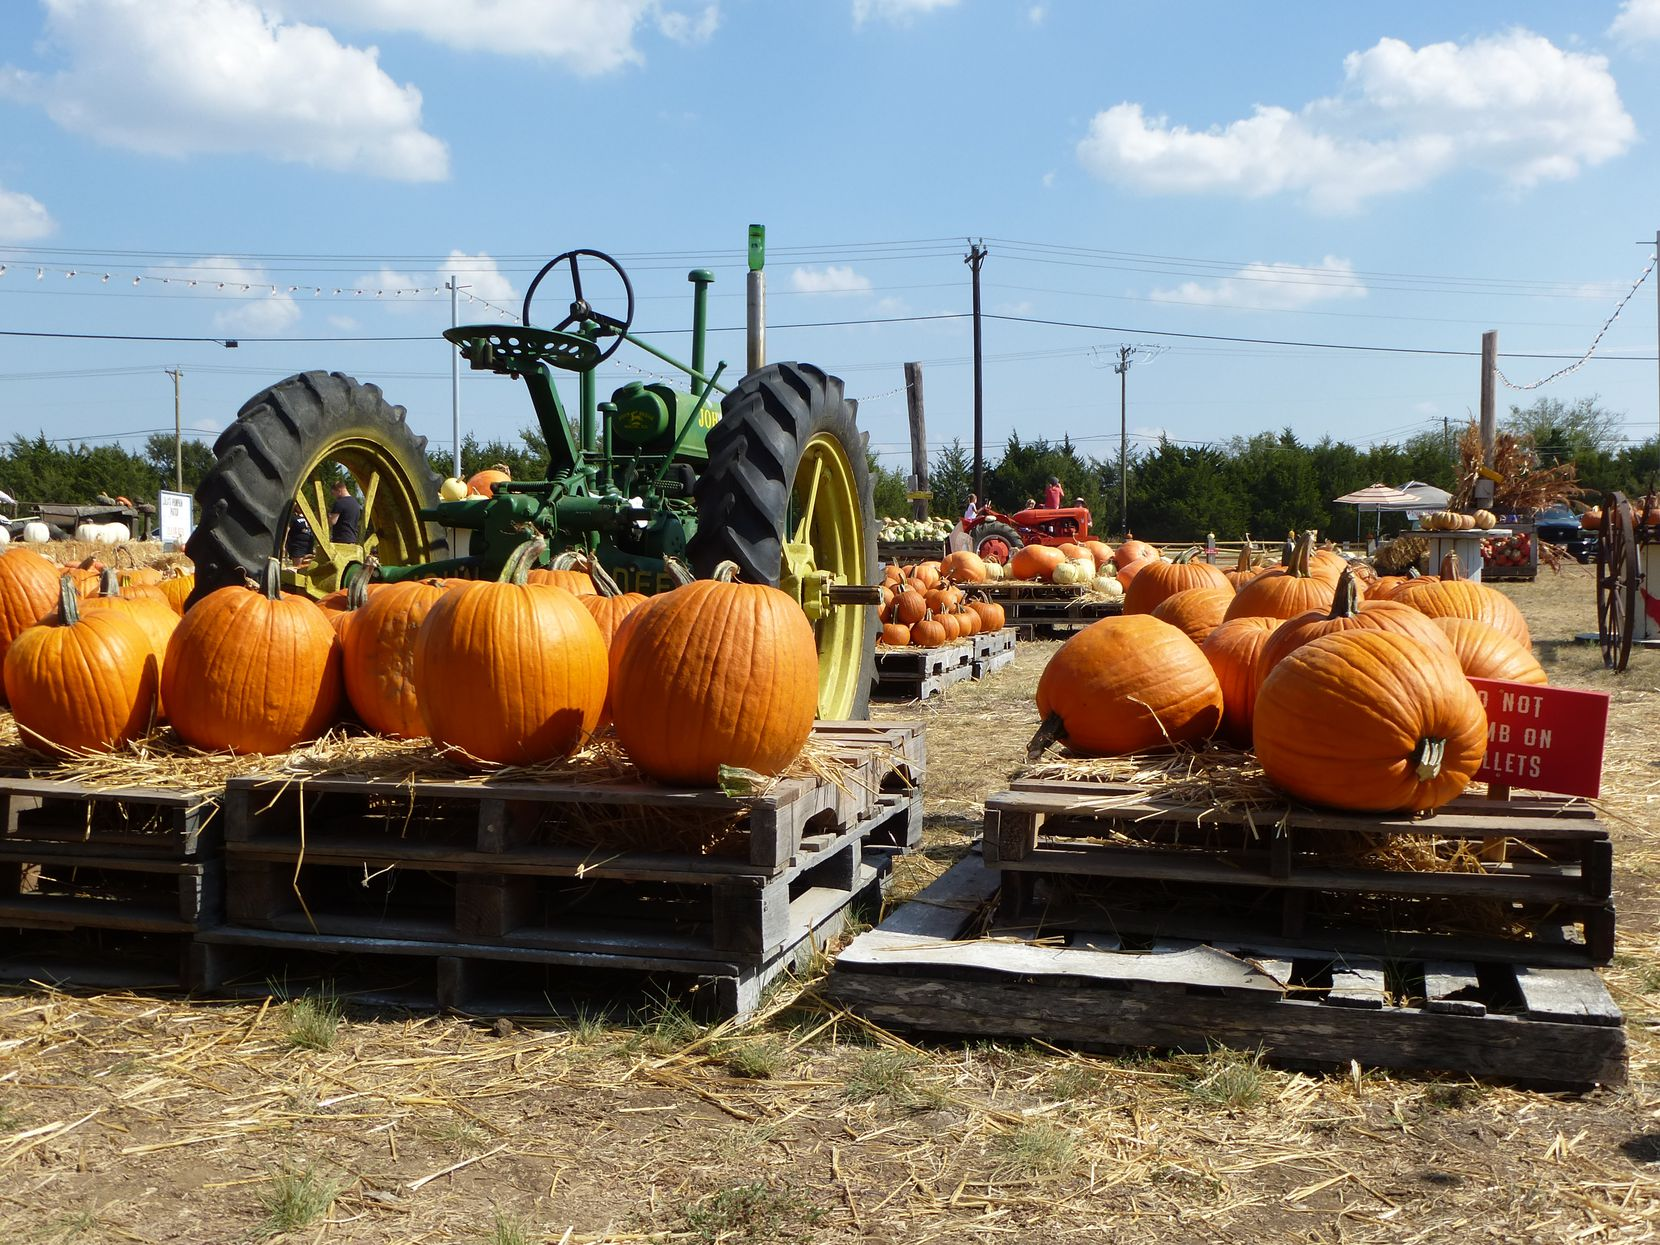 Lola's Pumpkin Patch at Lola's Local Market in Melissa includes vintage tractors in addition to hundreds of pumpkins.